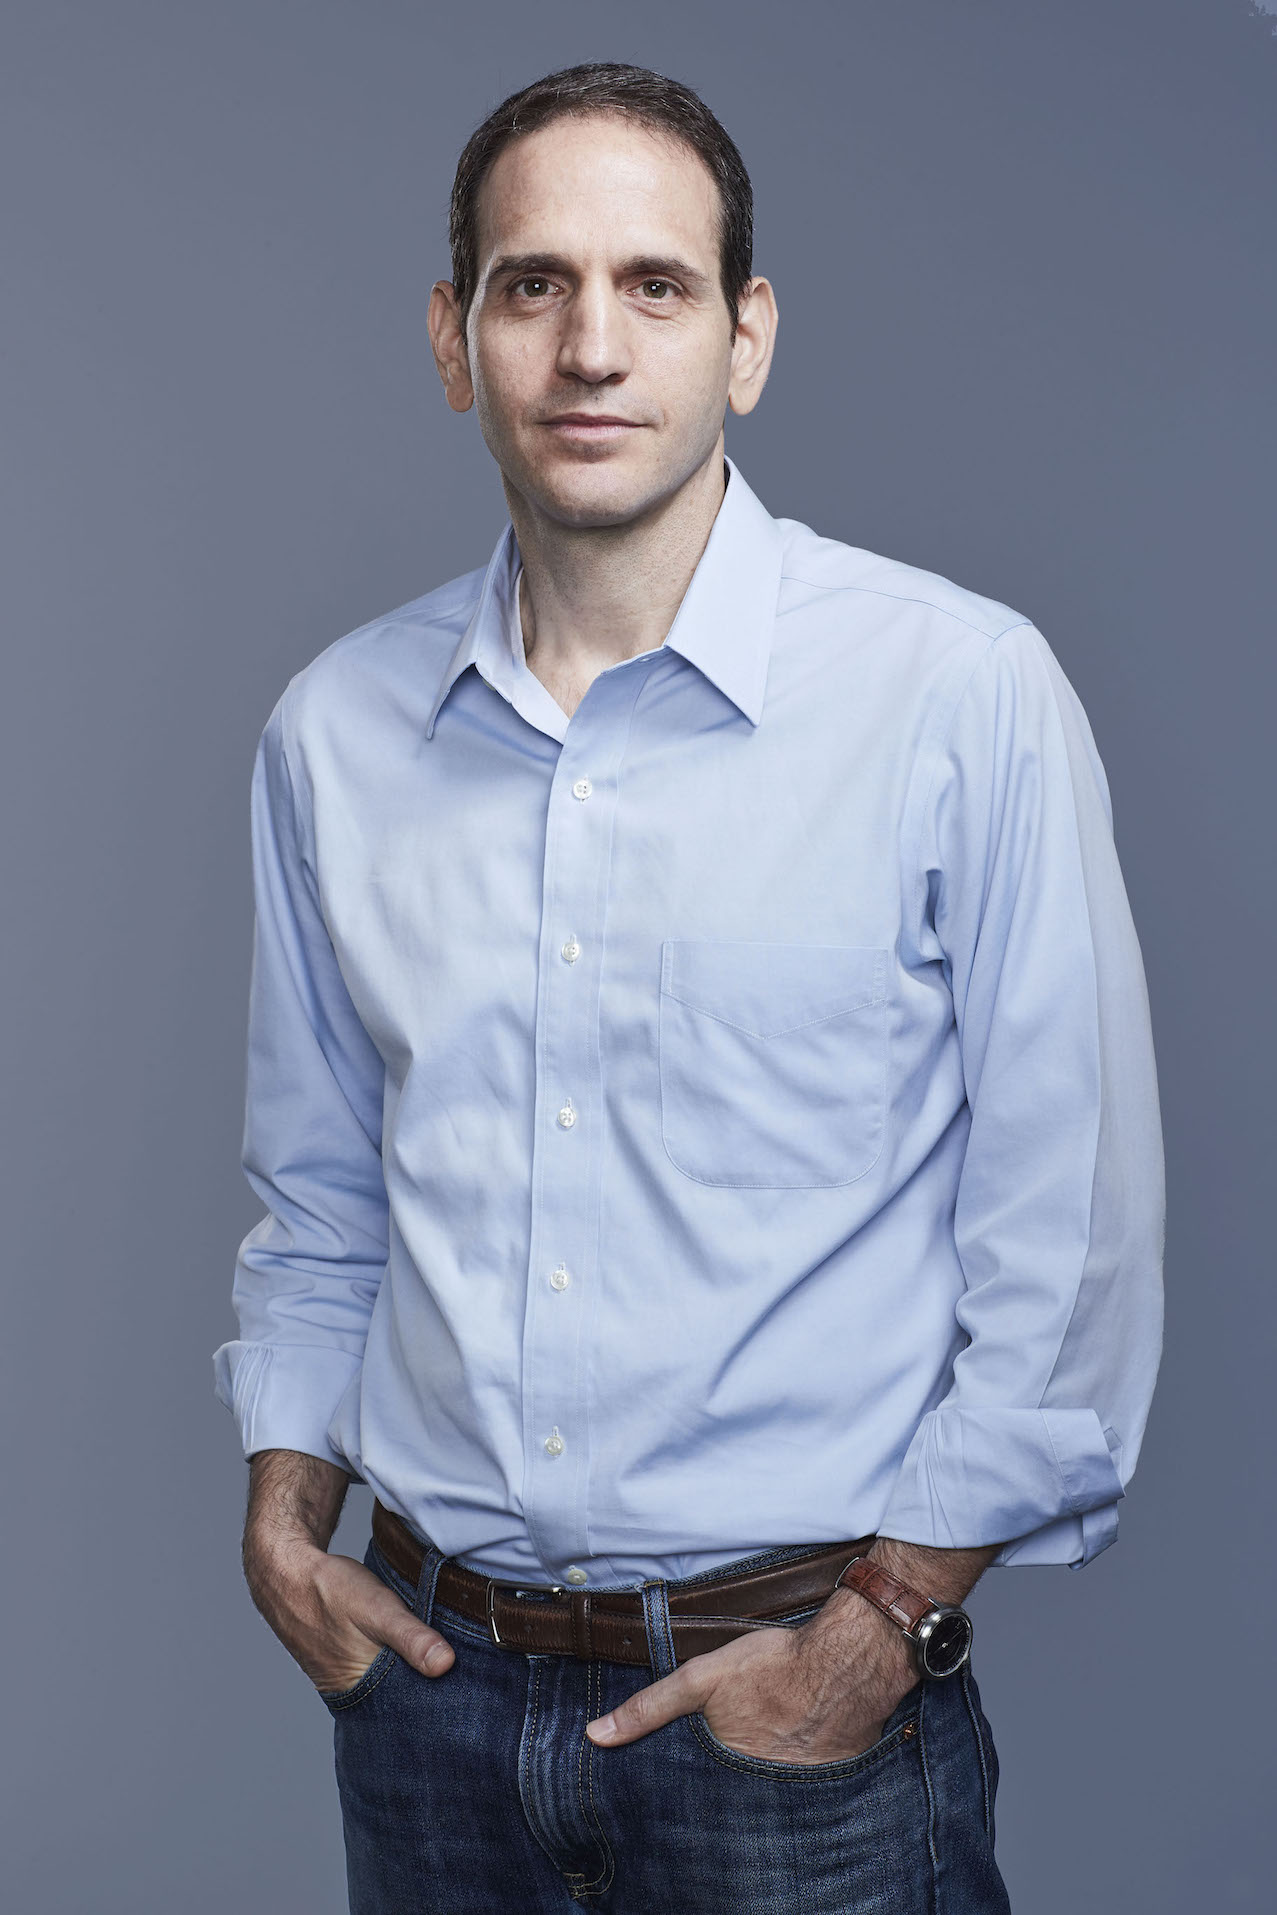 Josh Cohen - SVP of Product